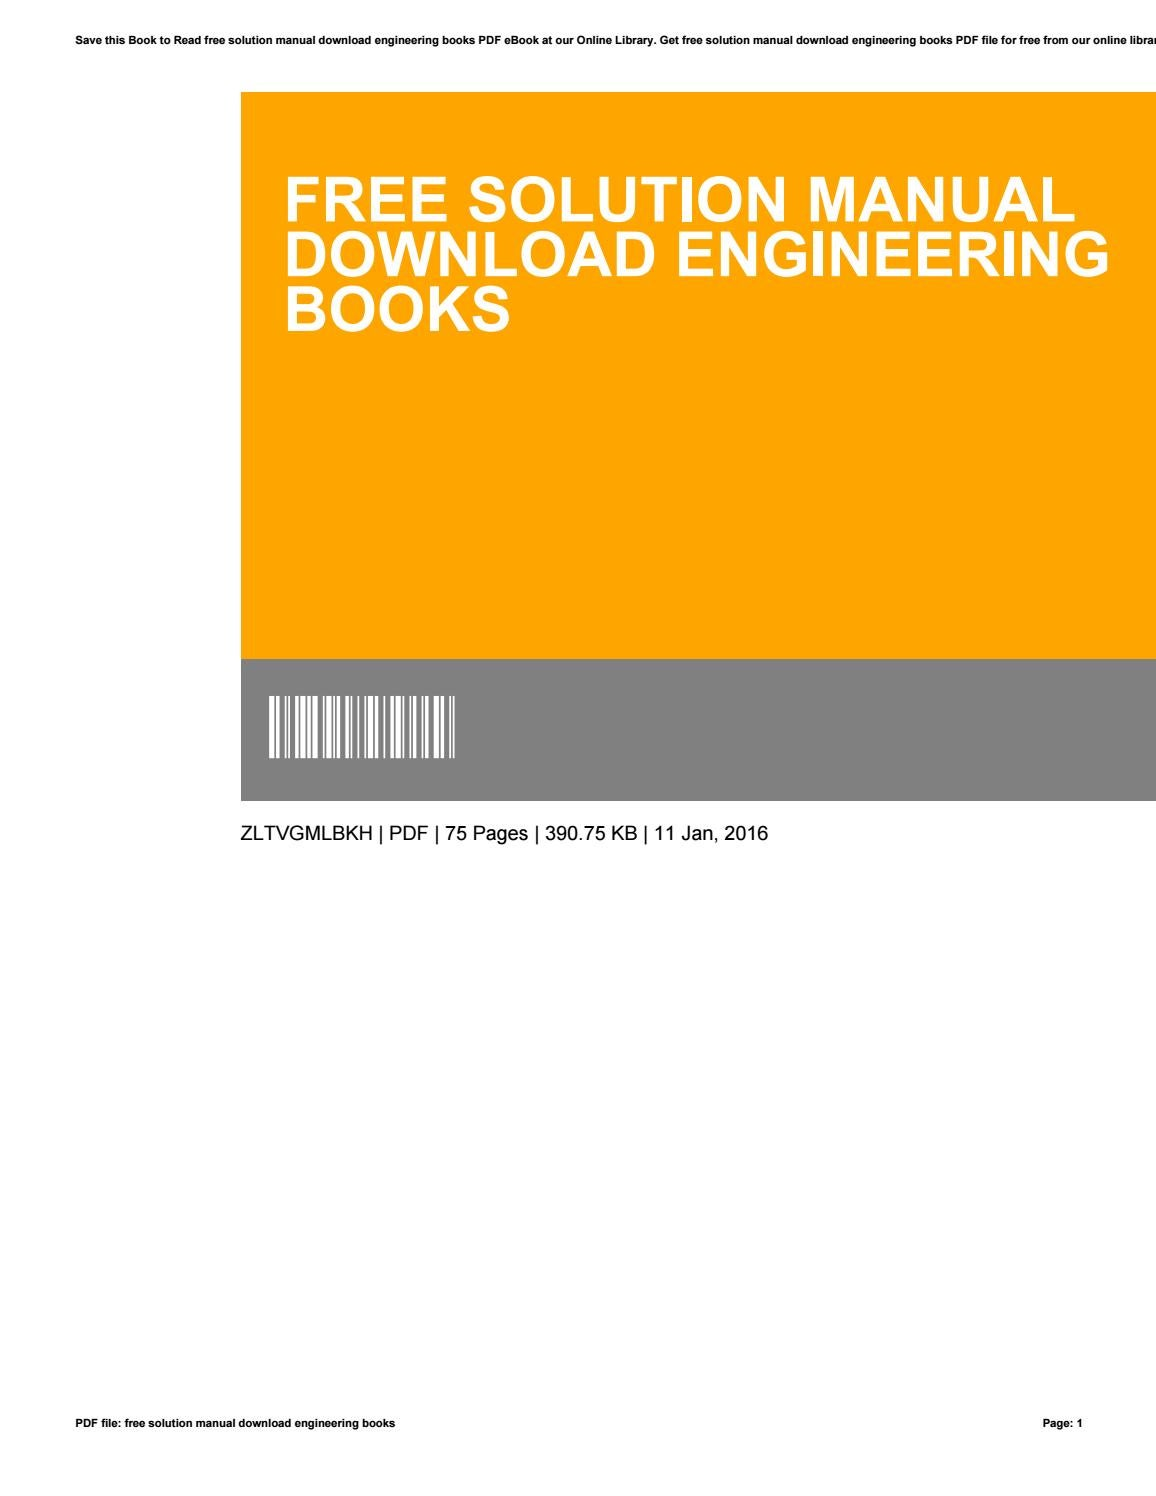 Free solution manual download engineering books by CarolynGray4559 - issuu